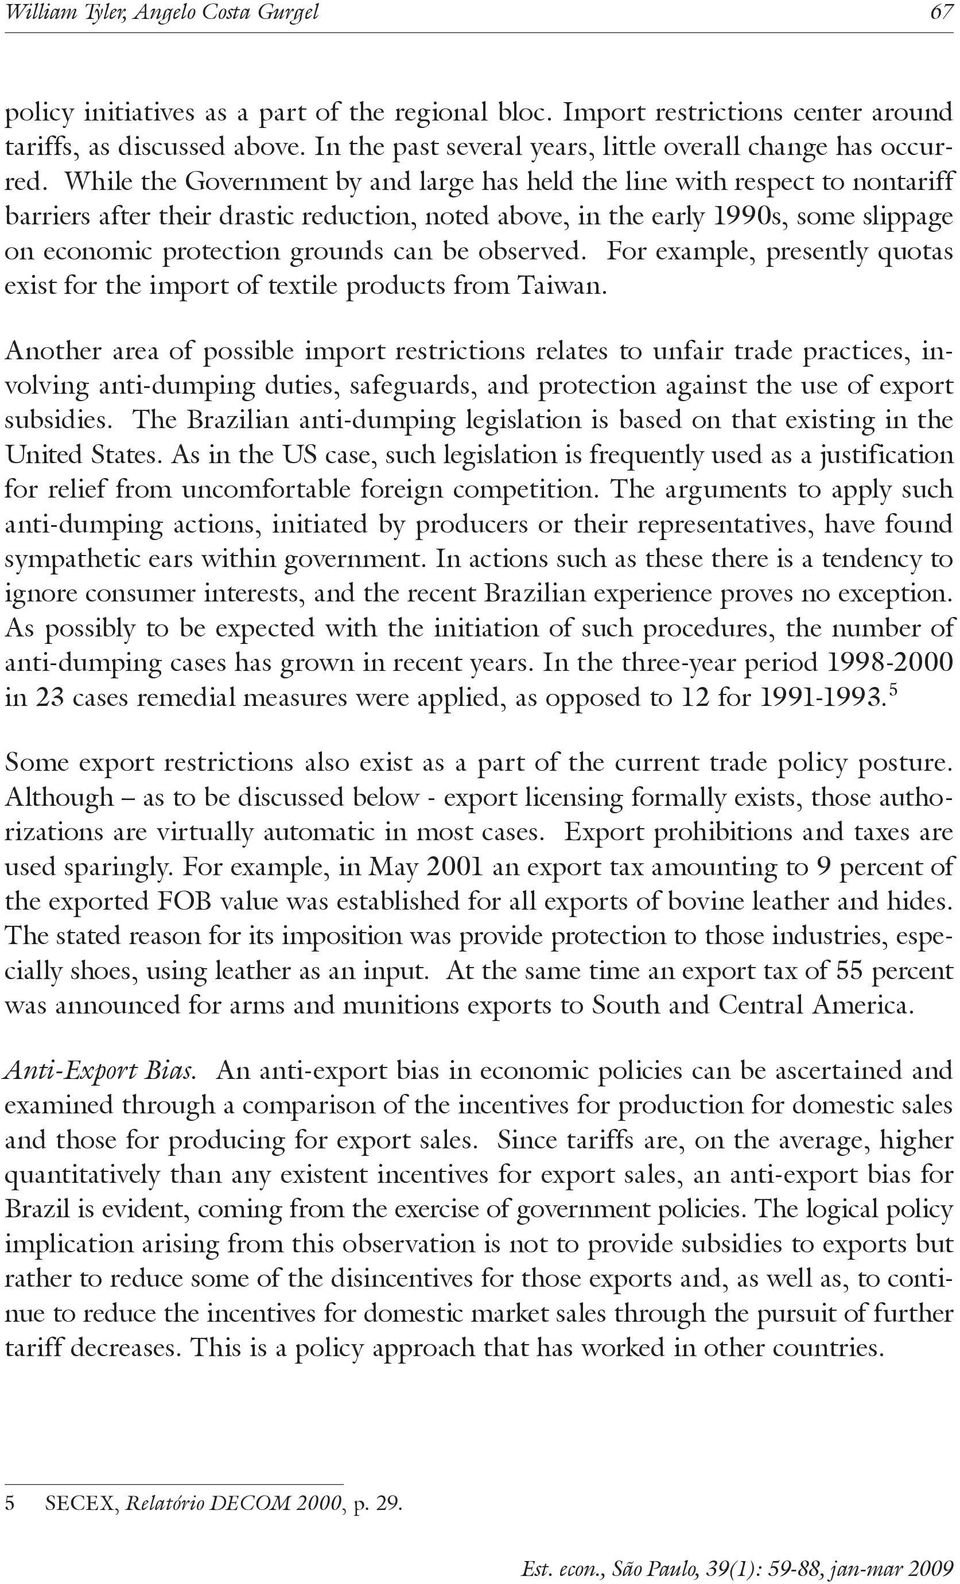 While the Government by and large has held the line with respect to nontariff barriers after their drastic reduction, noted above, in the early 1990s, some slippage on economic protection grounds can